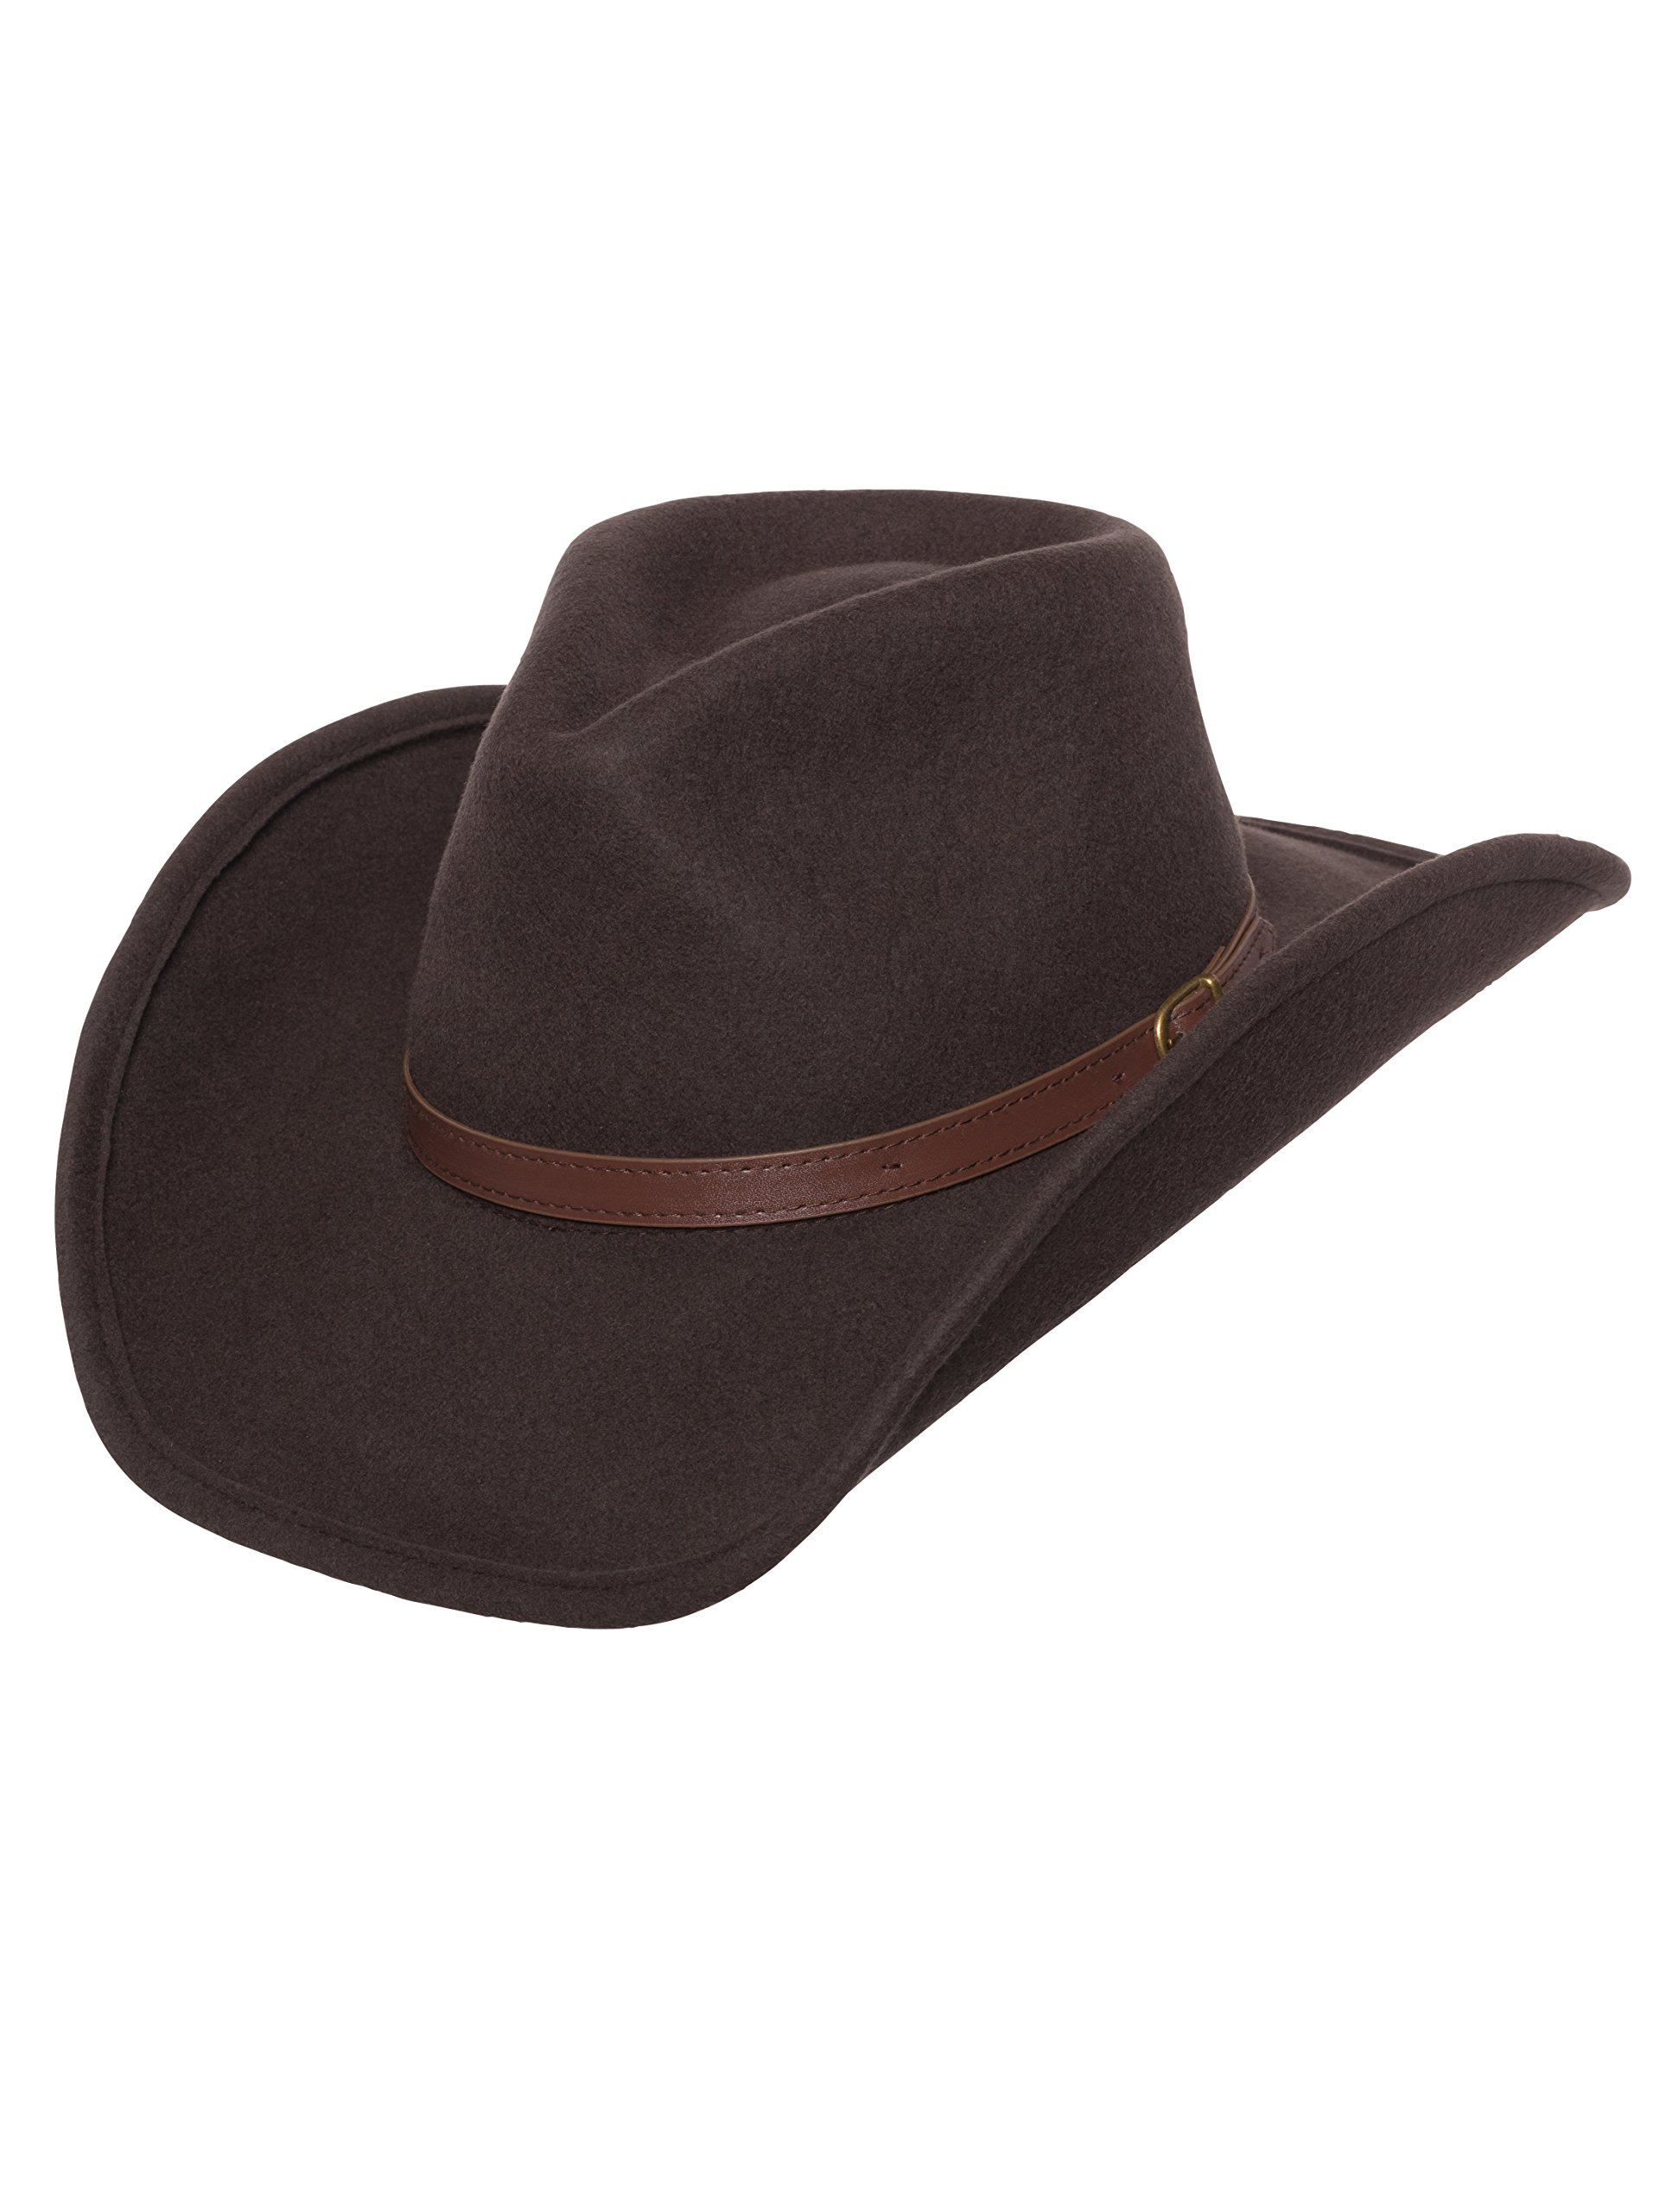 Men's Outback Wool Cowboy Hat Dakota Brown Shapeable Western Felt by Silver Canyon, Brown, XX-Large